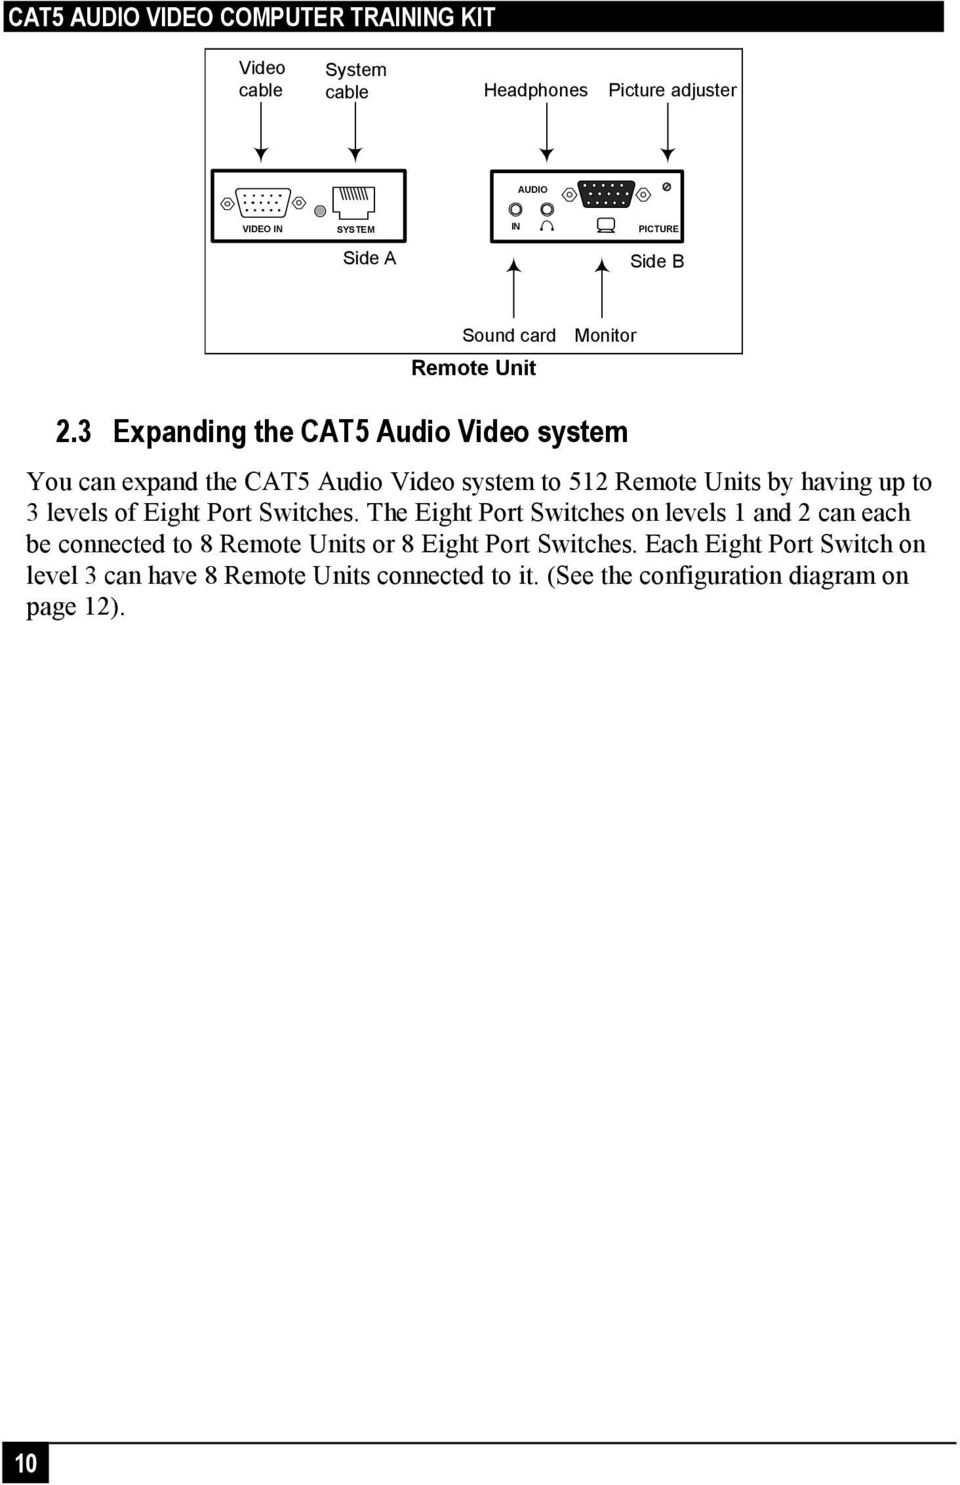 3 Expanding the CAT5 Audio Video system You can expand the CAT5 Audio Video system to 512 Remote Units by having up to 3 levels of Eight